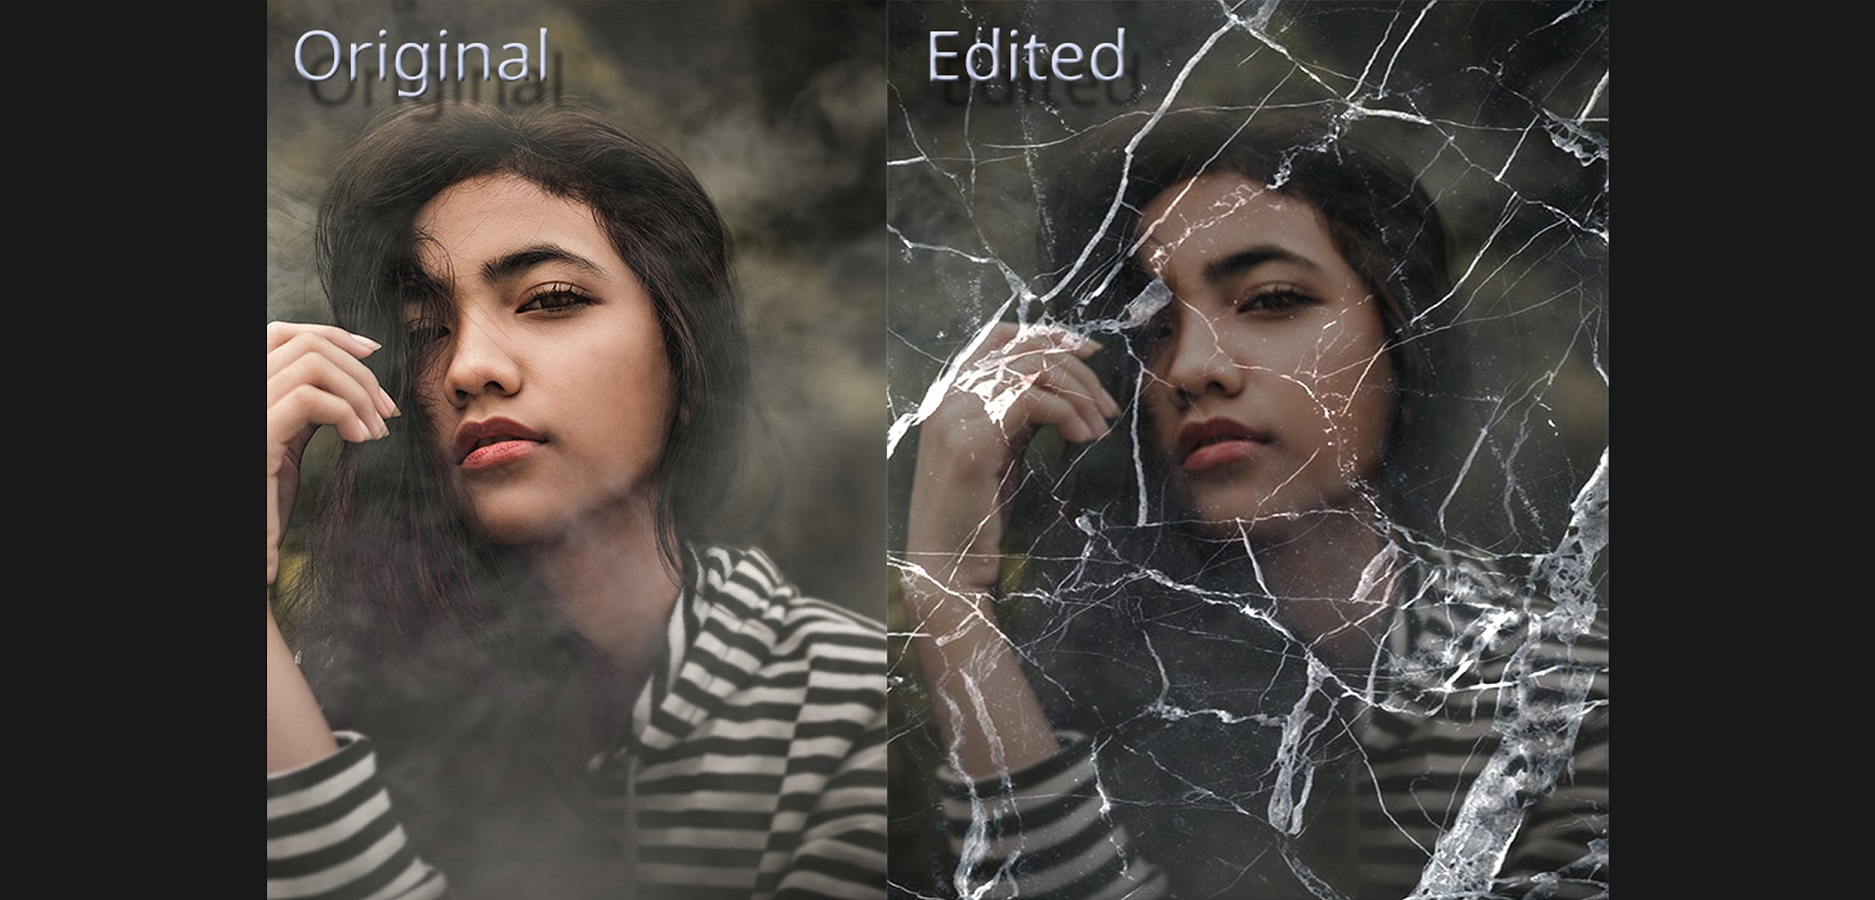 I will do nice and realistic photoshop editing